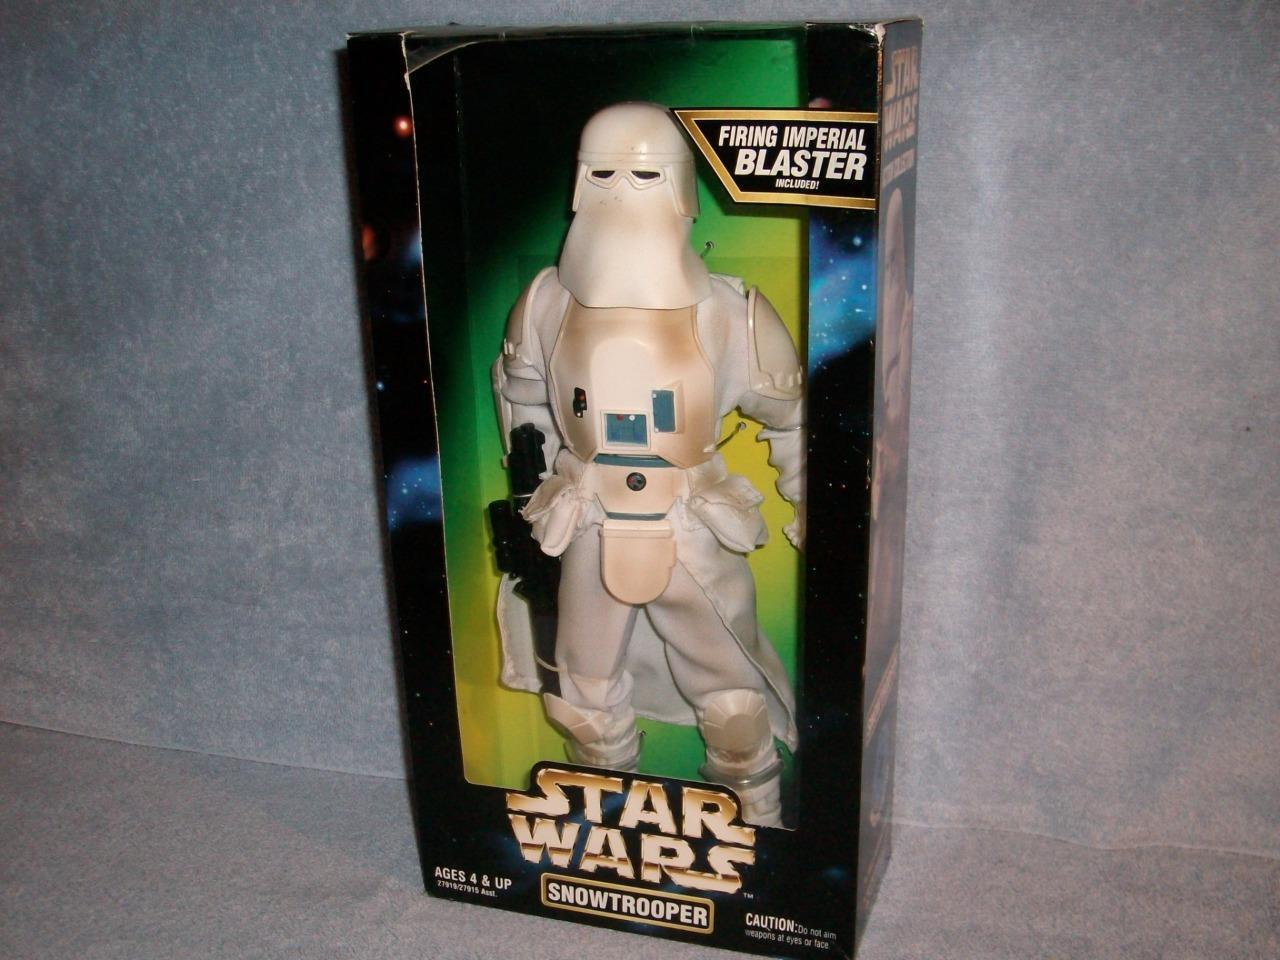 Snowtrooper Variante Azul disparo Imperial Blaster Estrella Wars Empire Strikes Back